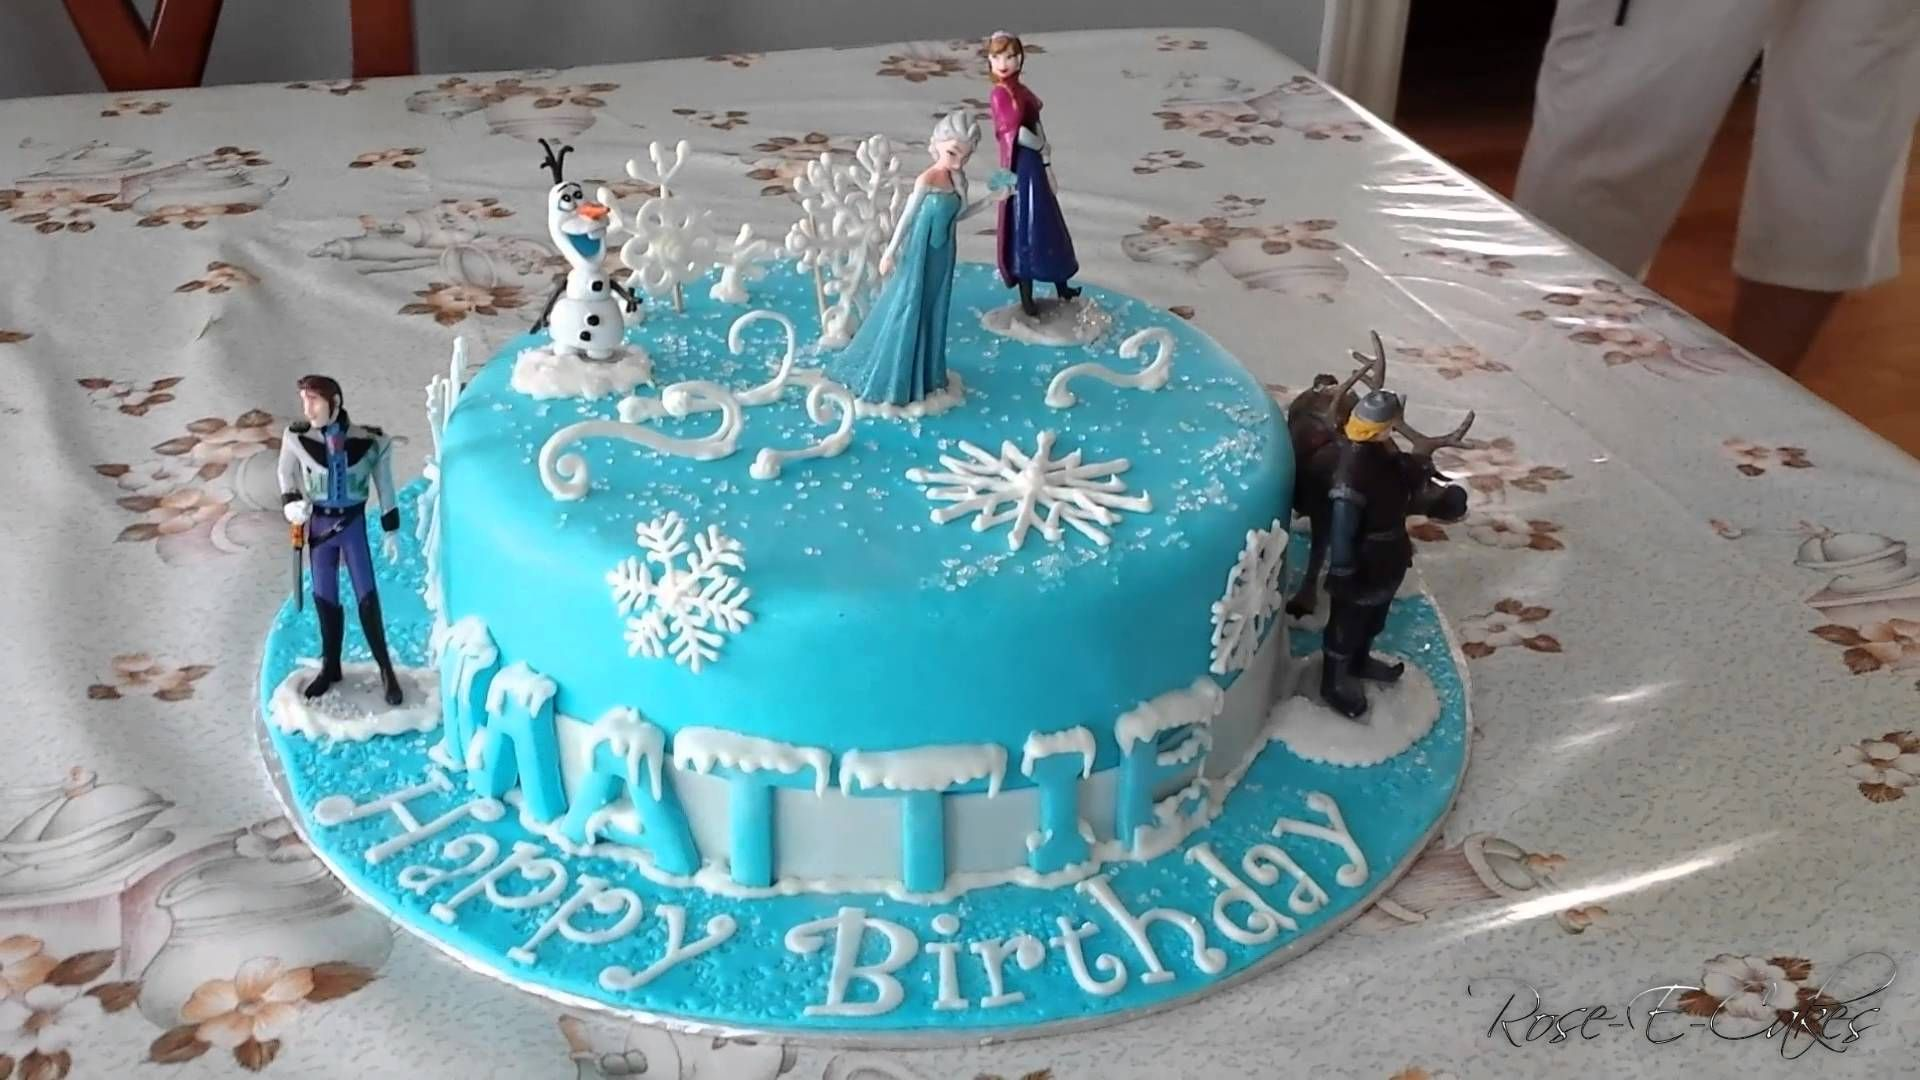 The incredibly popular movie Frozen inspired this cake. A lucky little girl who loves Frozen got a beautiful cake styled after the movie and topped with some...